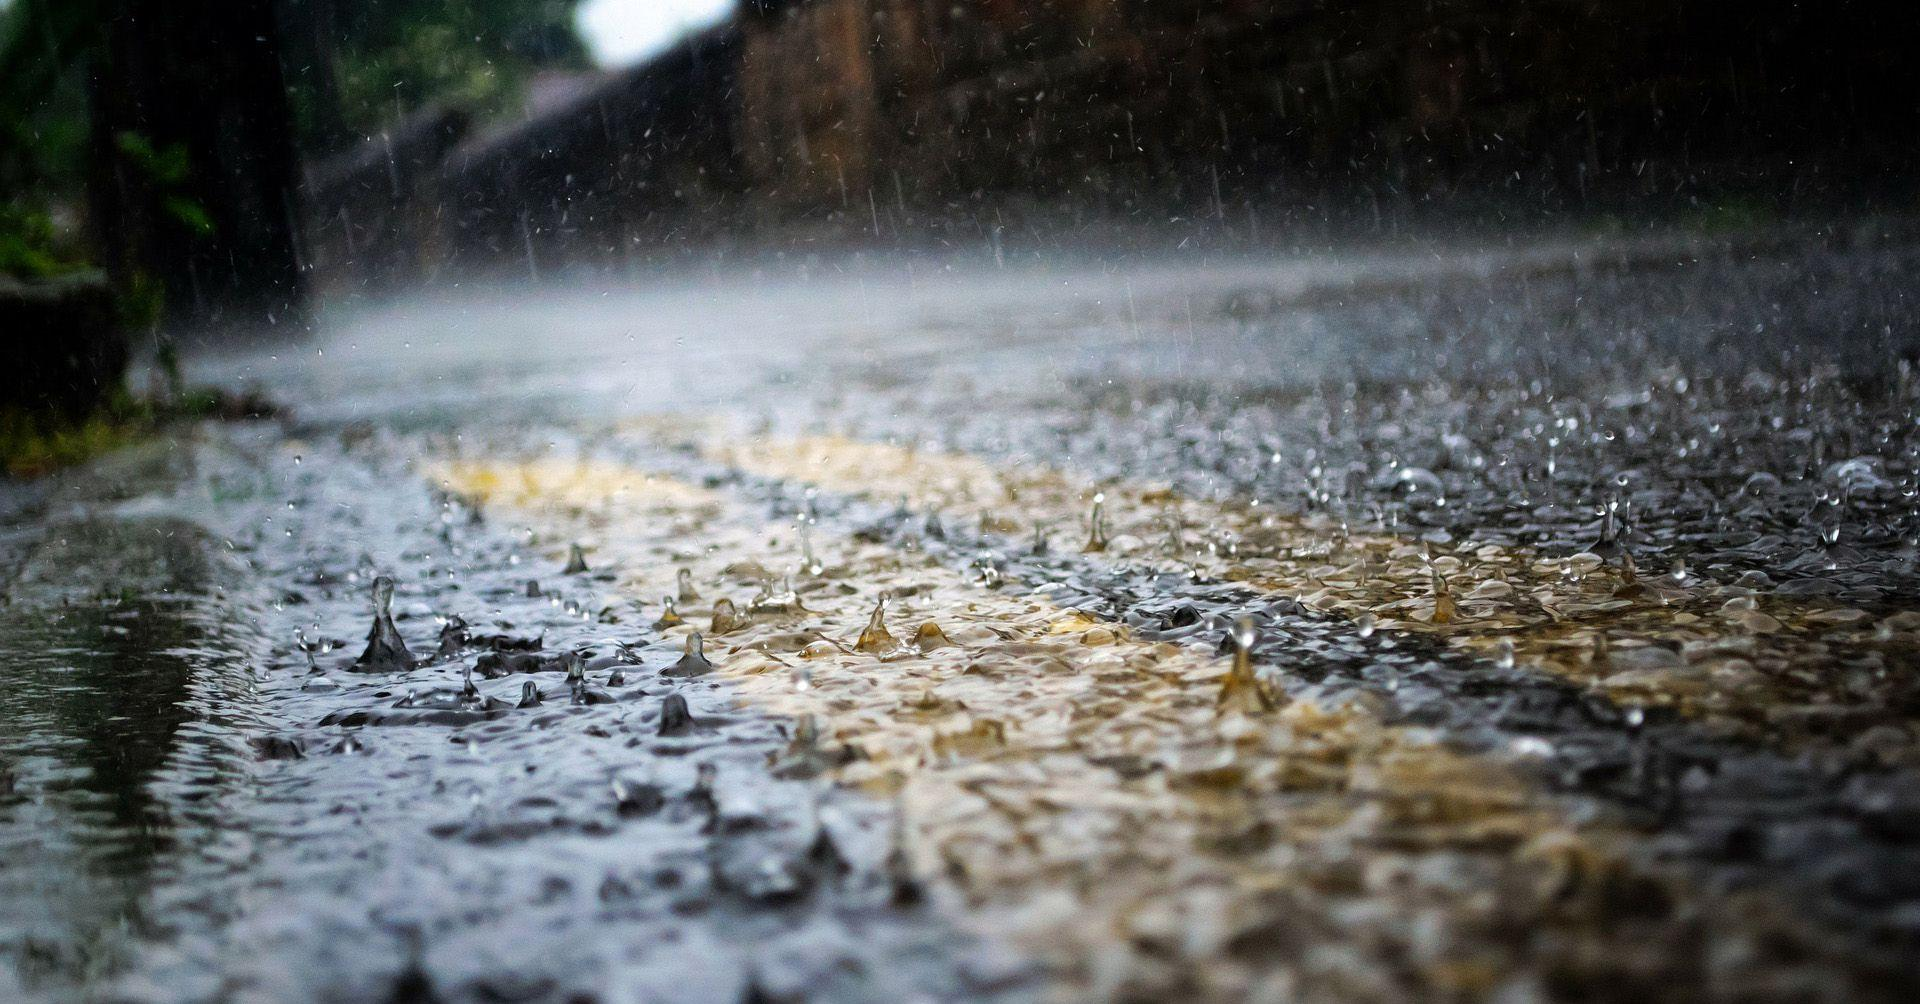 Rainy day images hd free download